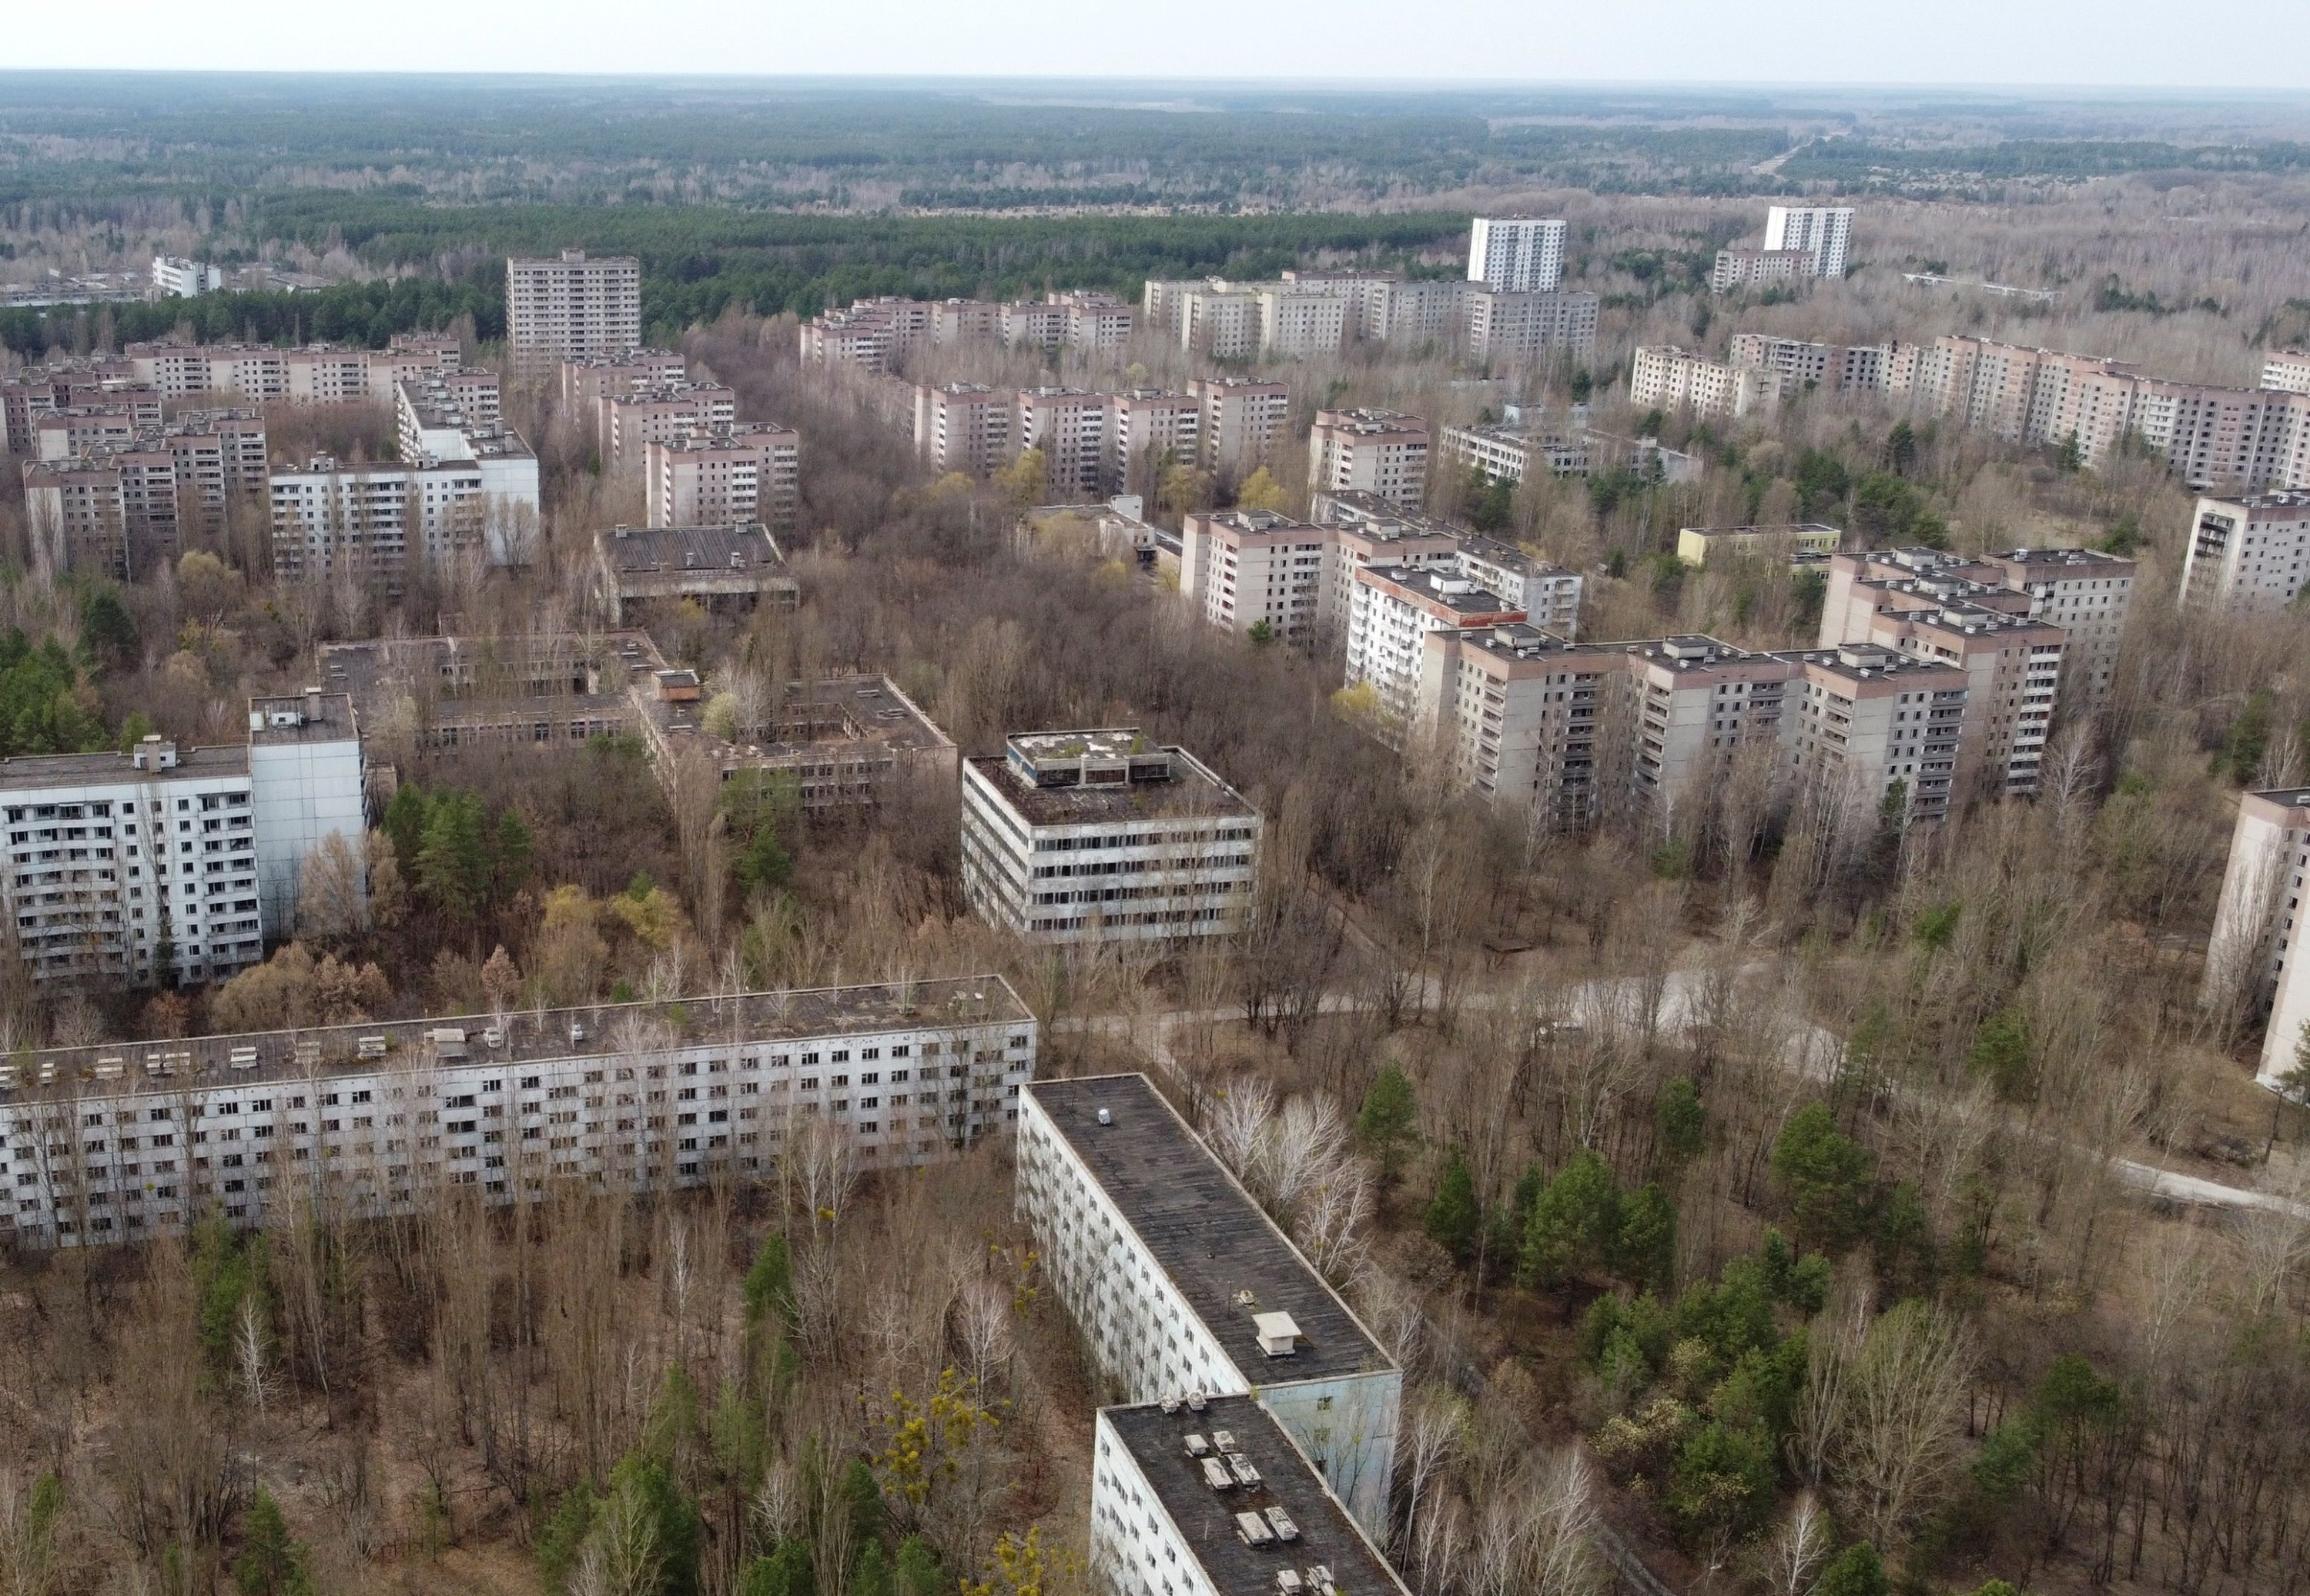 A view shows the abandoned city of Pripyat near the Chernobyl Nuclear Power Plant, Ukraine, April 12, 2021. (Reuters Photo)